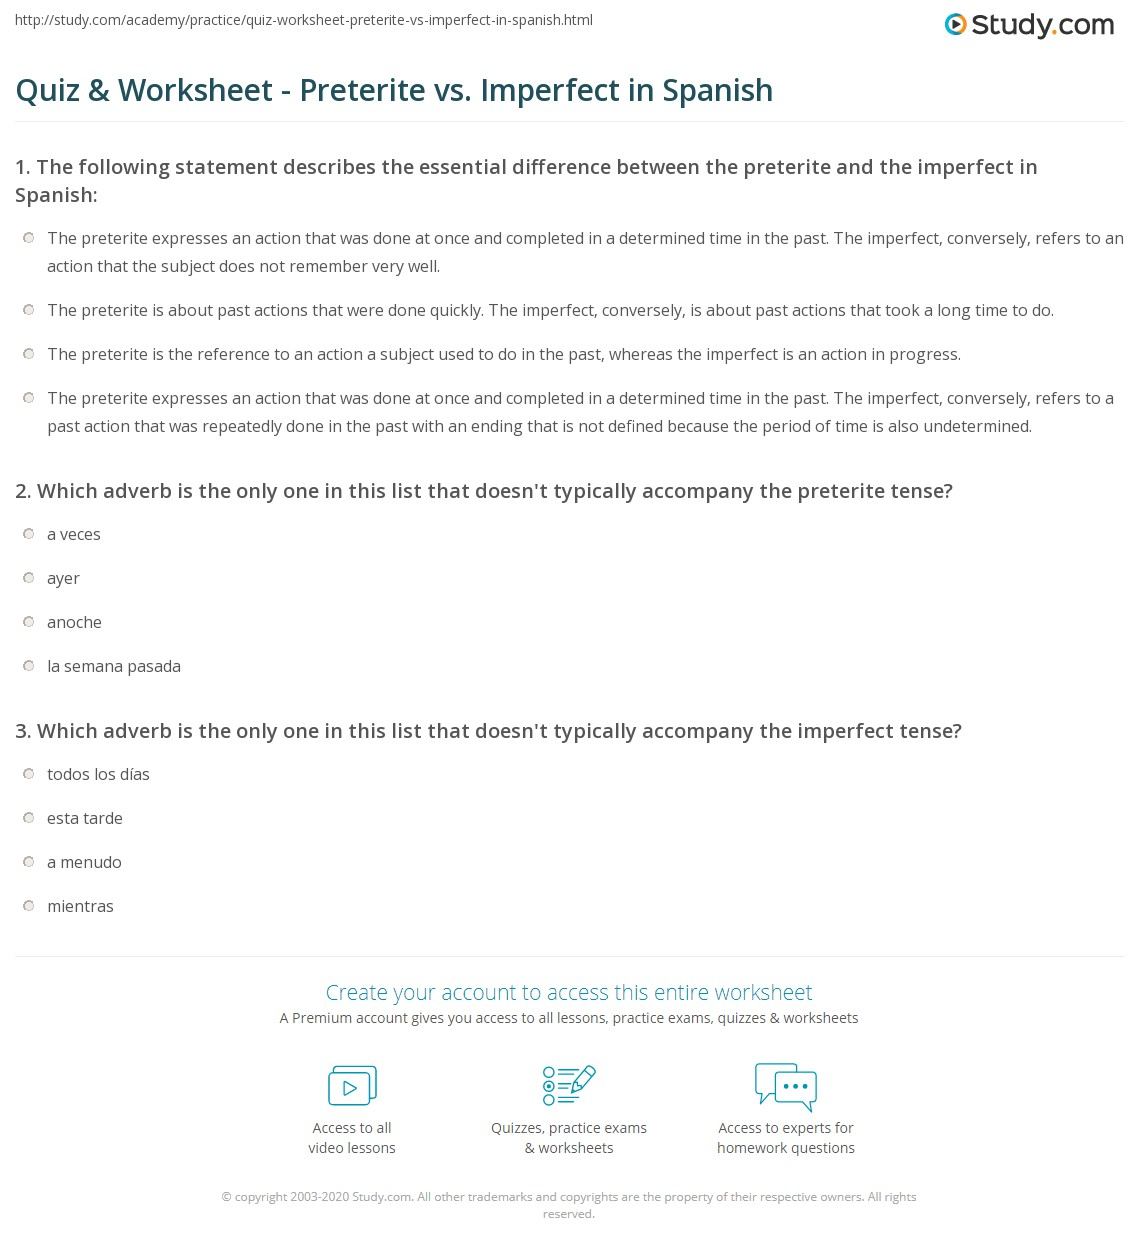 Quiz Worksheet Preterite vs Imperfect in Spanish – Preterite Vs Imperfect Worksheet with Answers